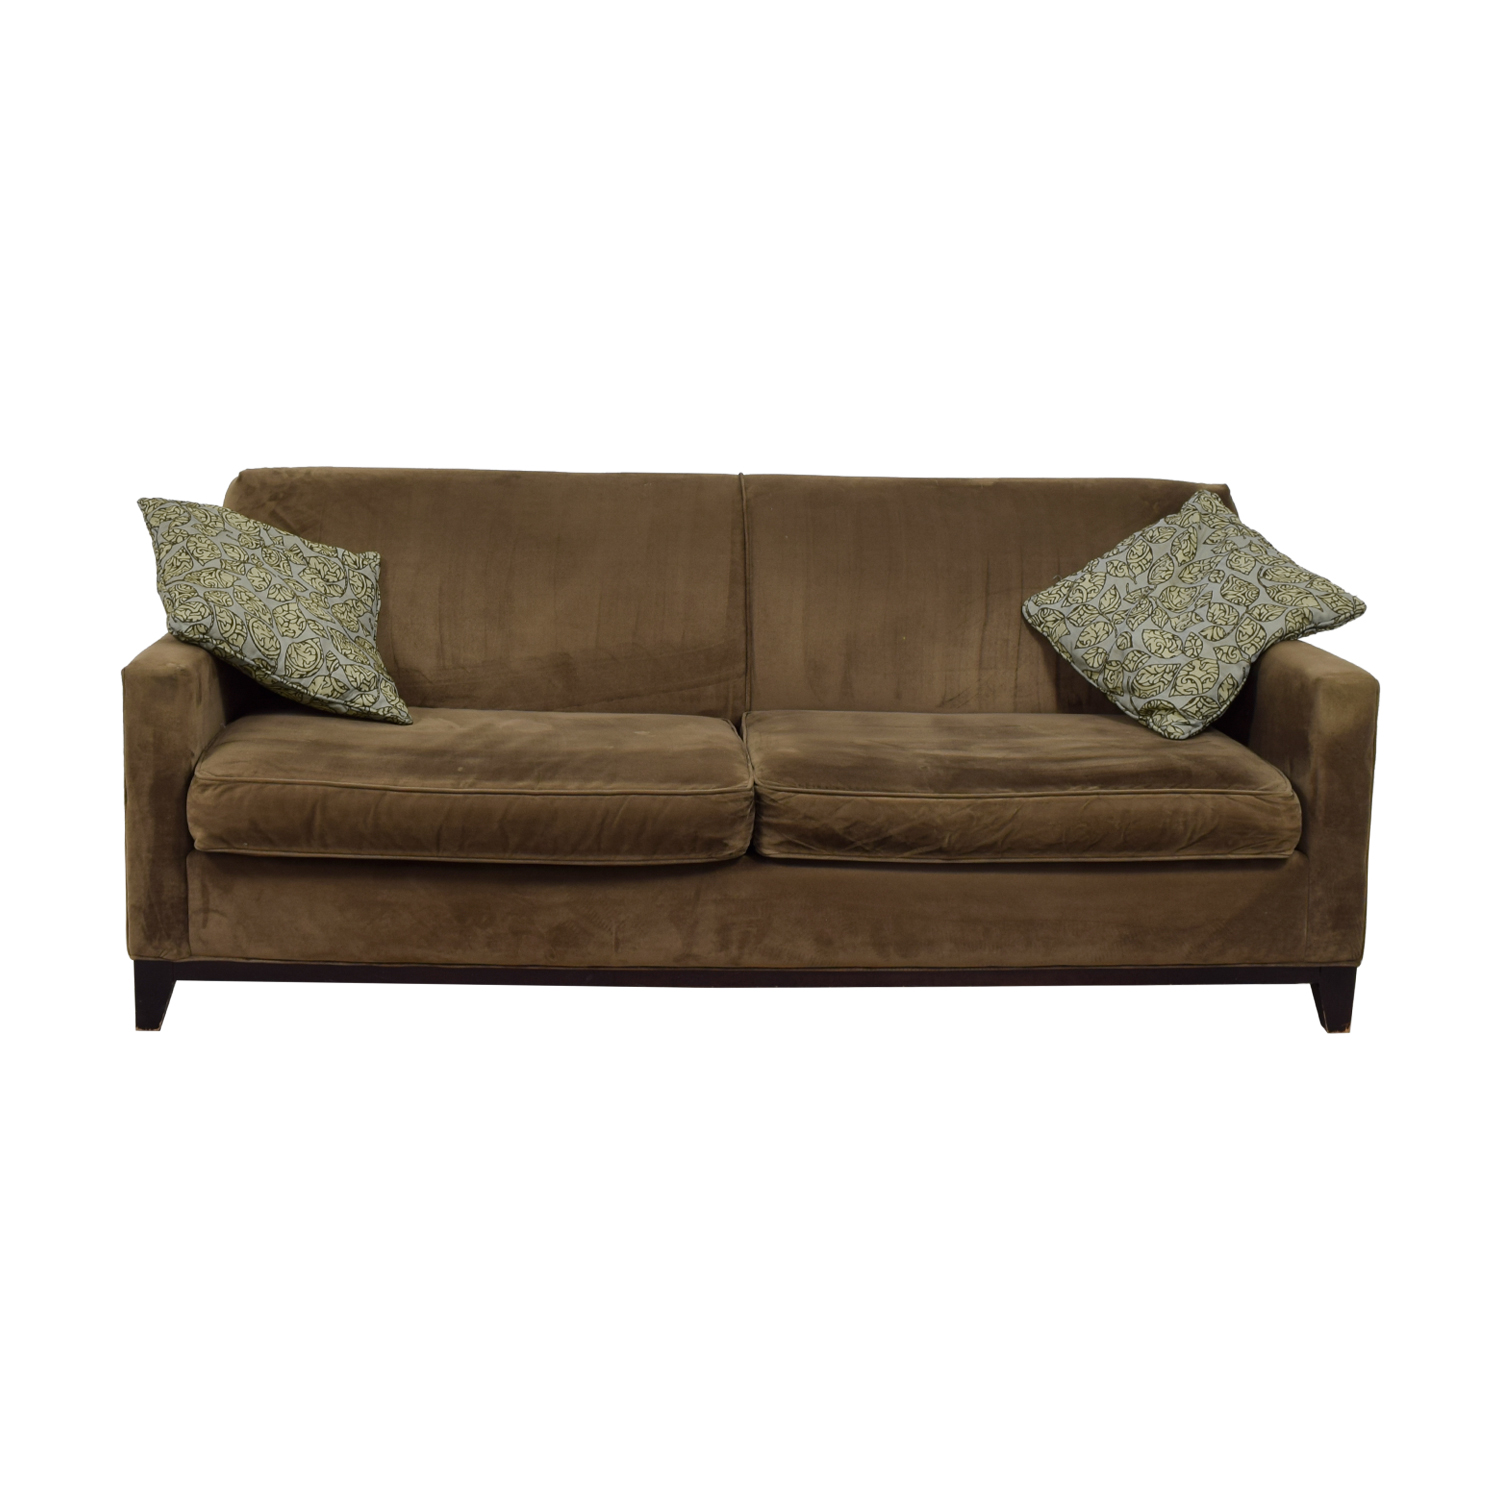 Rowe Martin Two-Cushion Sofa / Classic Sofas